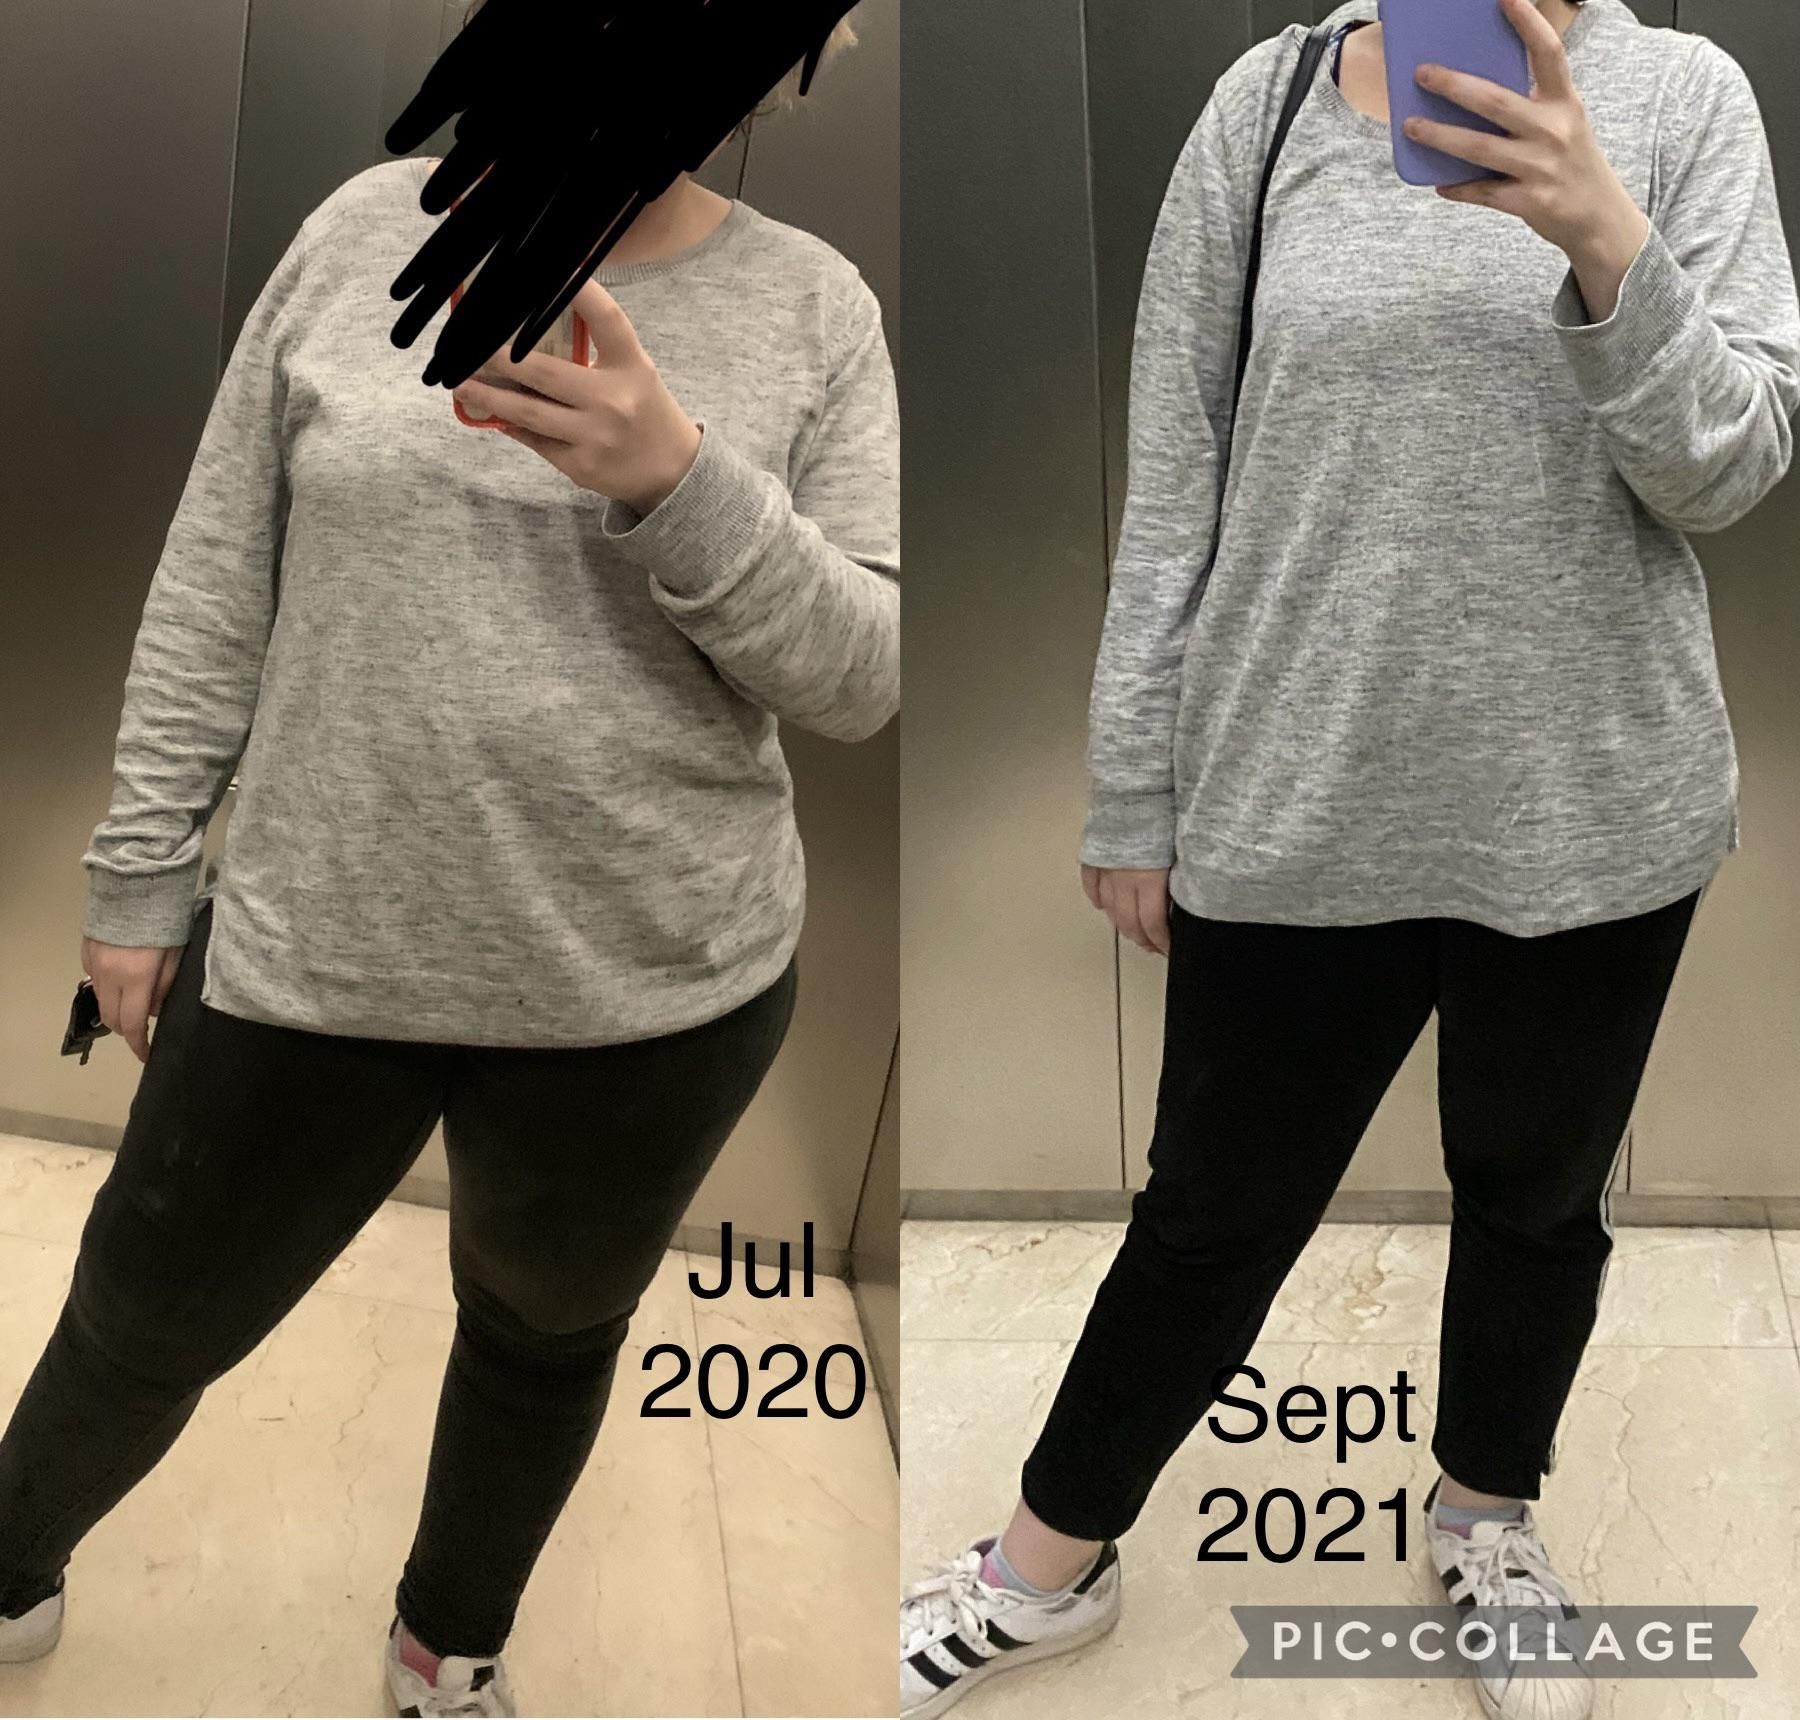 33 lbs Weight Loss Before and After 5'1 Female 176 lbs to 143 lbs